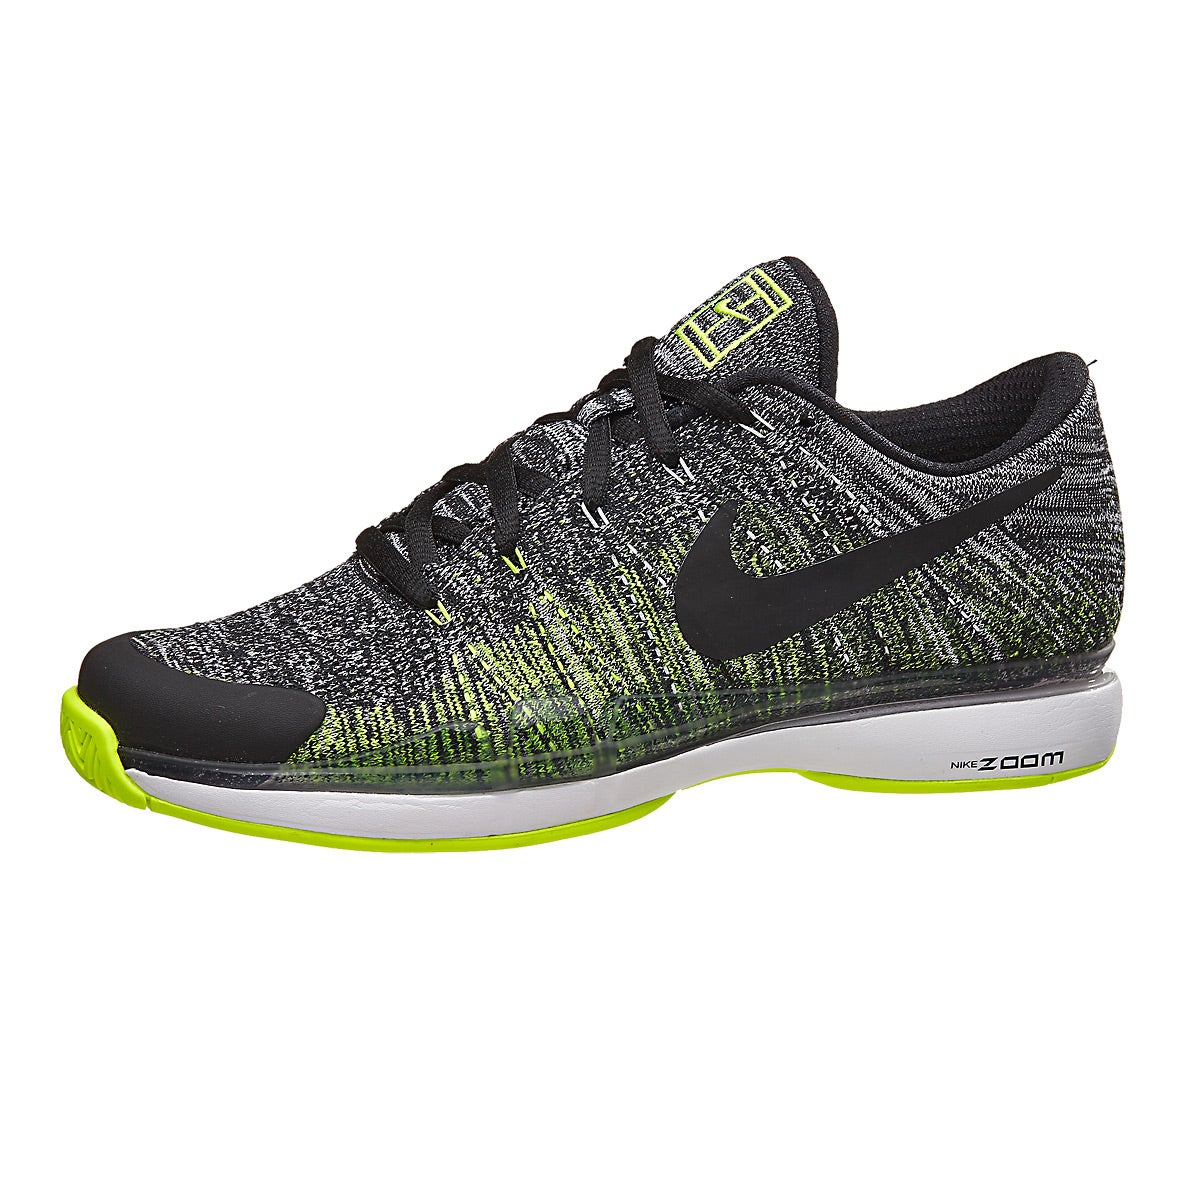 Nike Zoom Vapor 9.5 Flyknit Bk/Volt/Wh Men's Shoe 360° View.